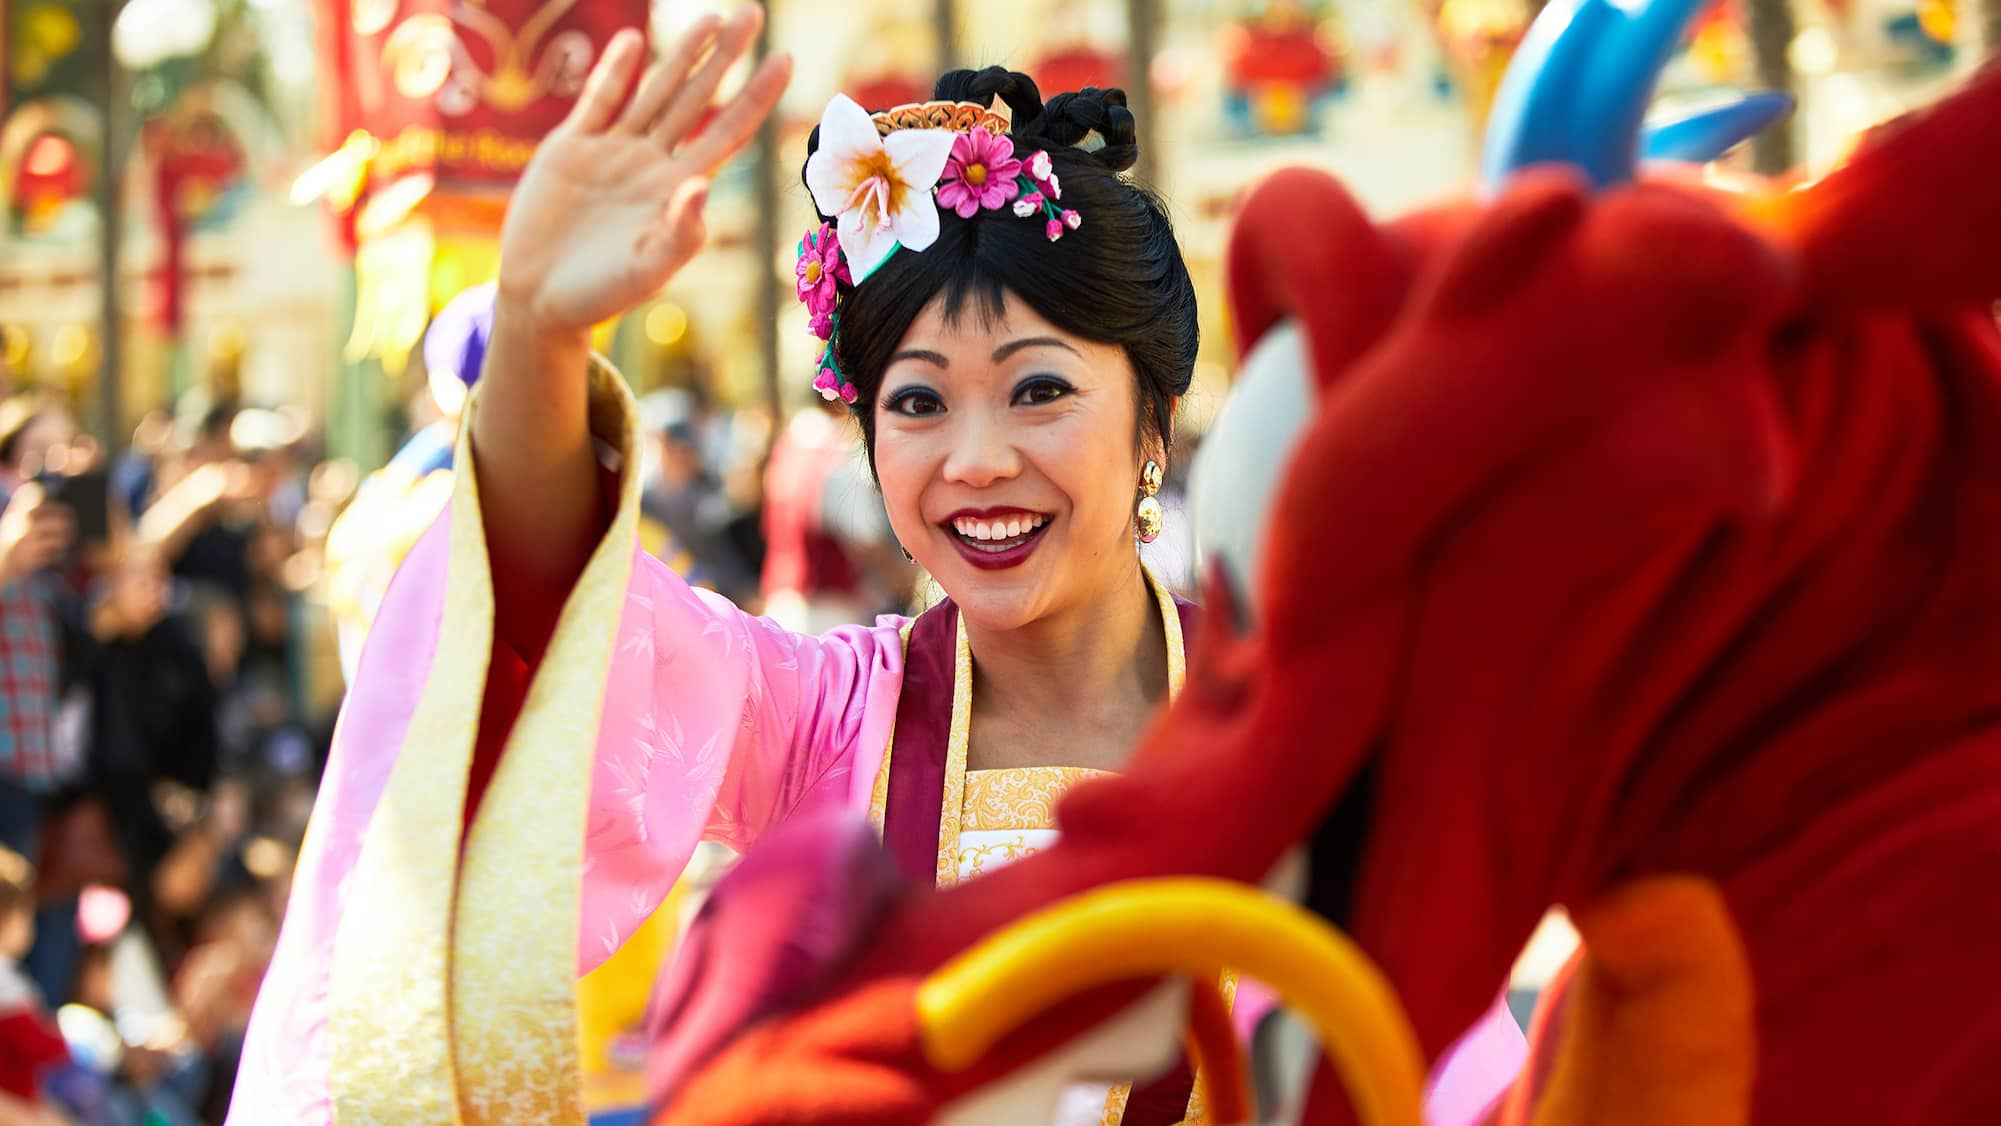 Mulan stands next to Mushu and waves to Guests